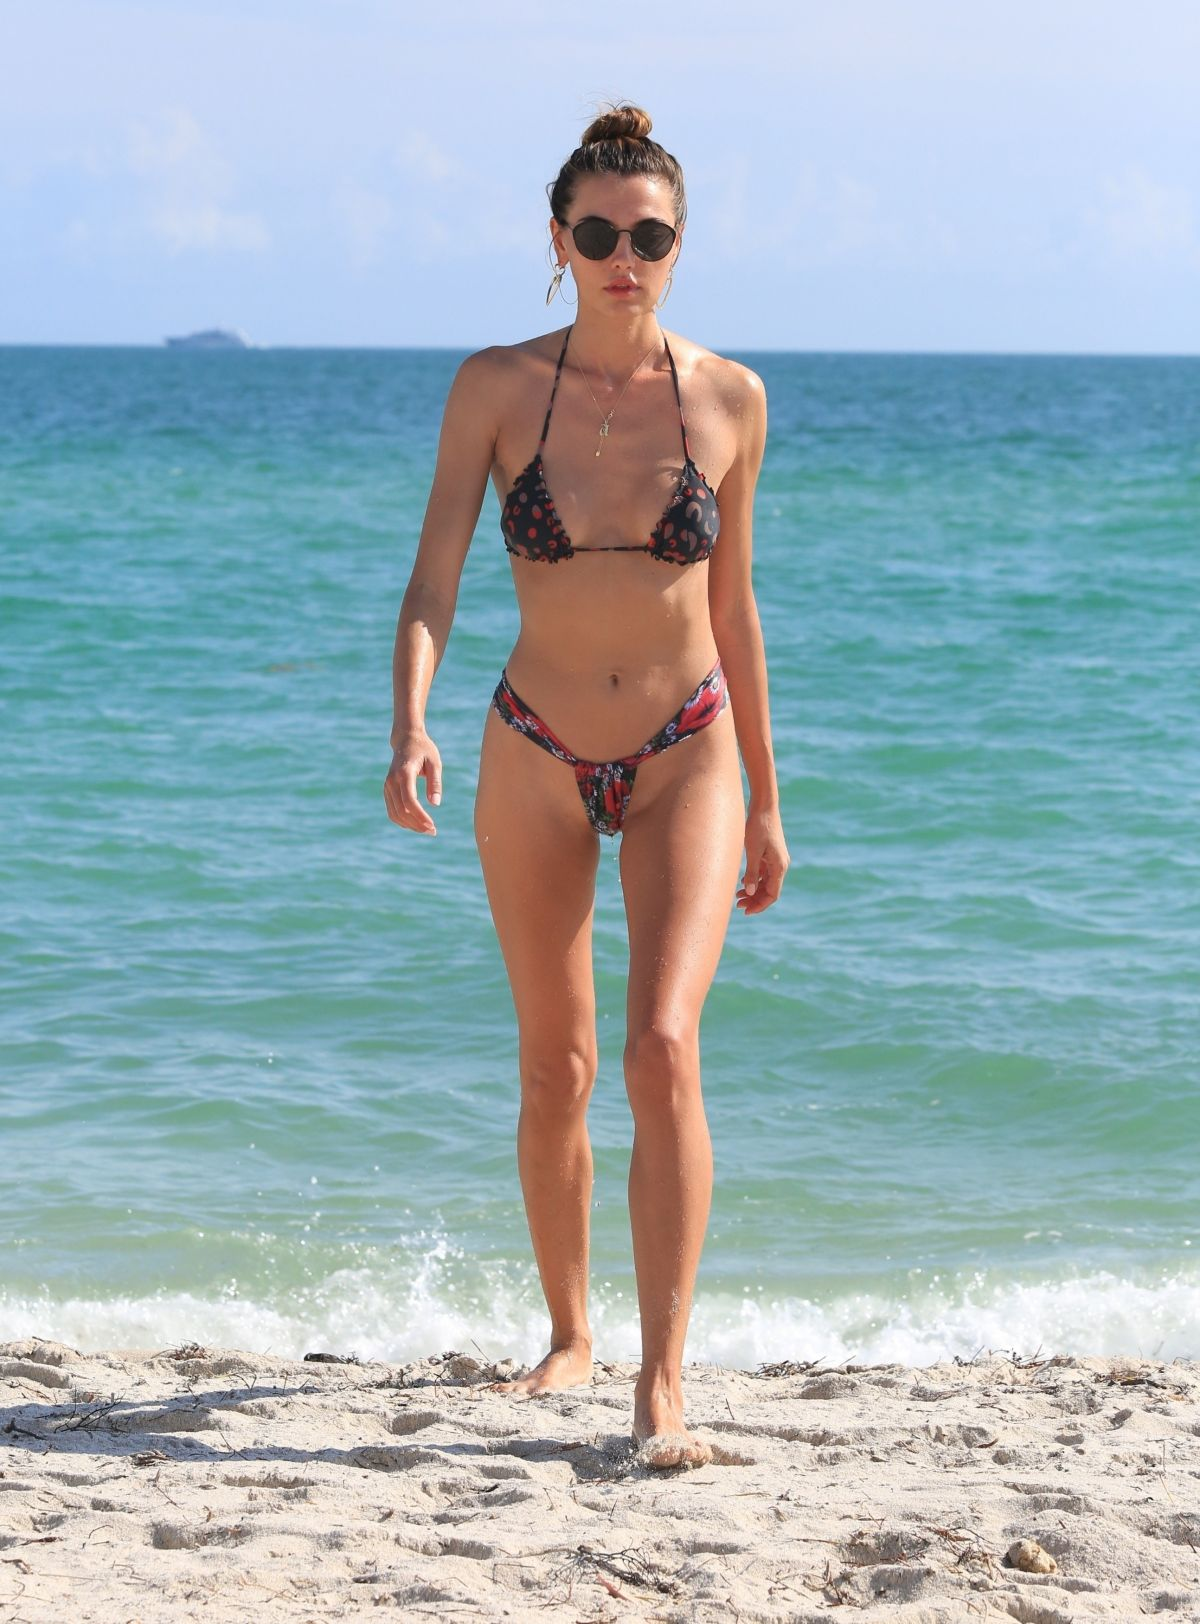 Alina Baikova in Bikini on the beach in Miami Pic 9 of 35